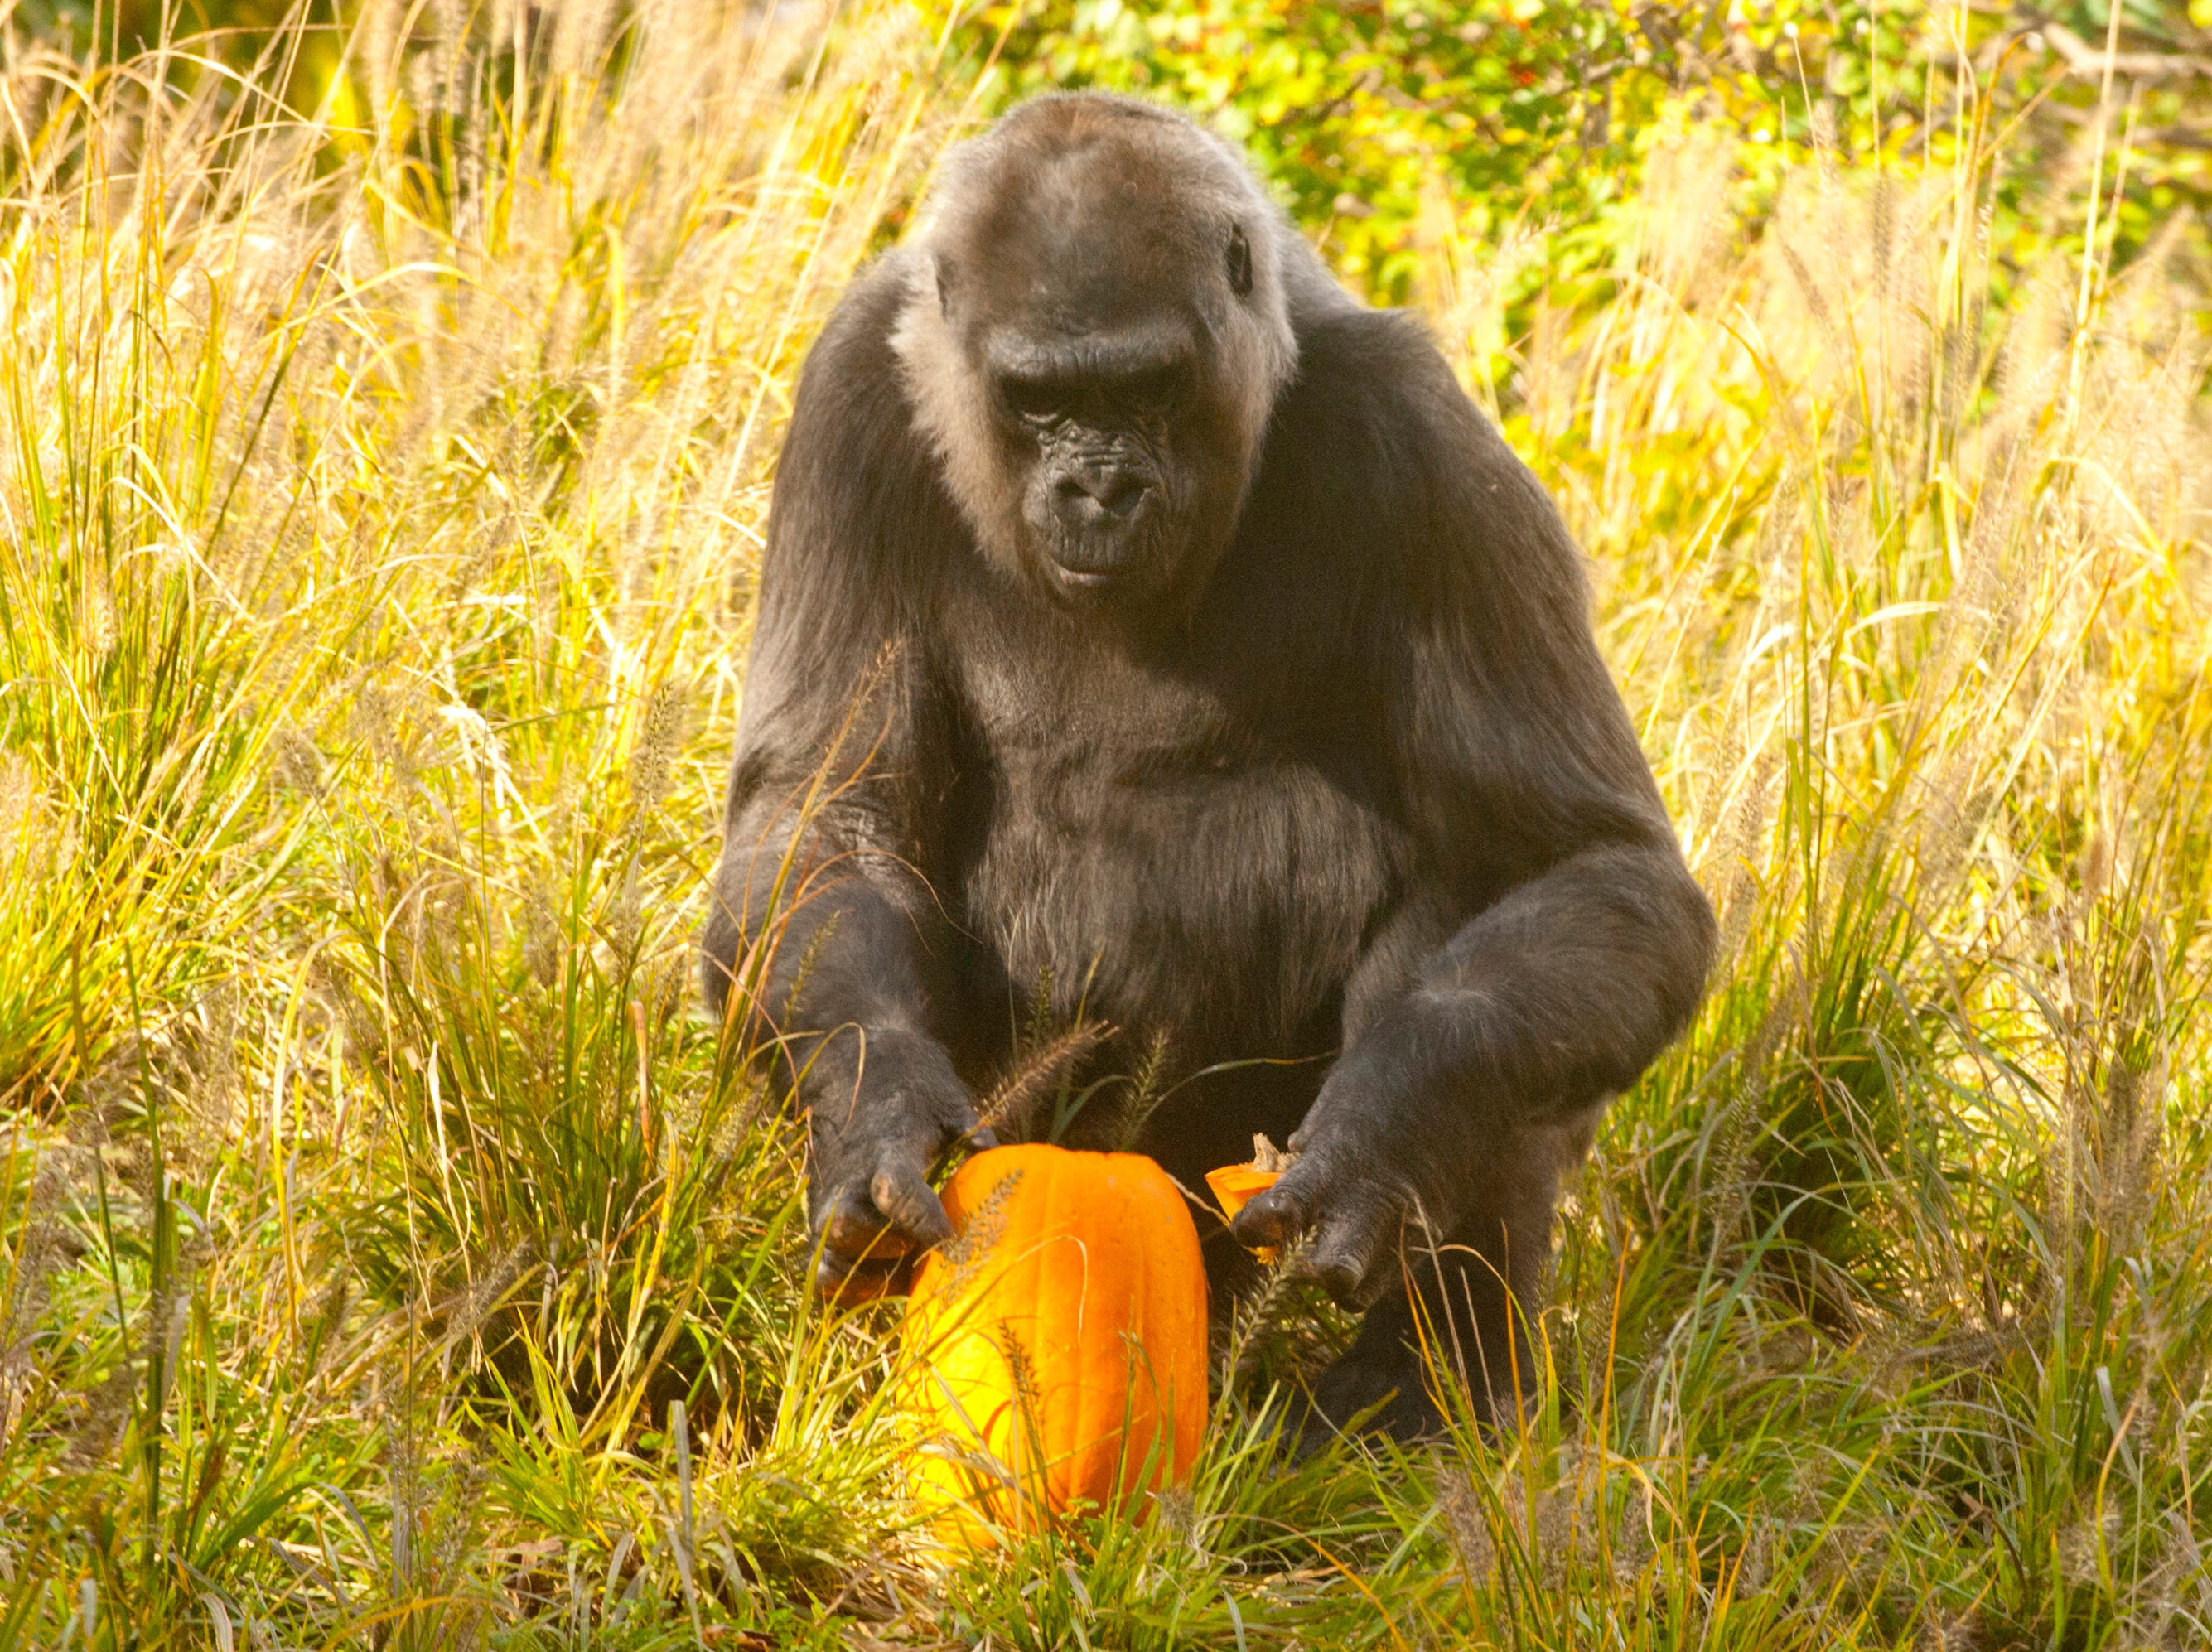 Helen checks out a pumpkin at the Louisville Zoo's annual pumpkin smash. The pumpkins being fed to the animals are from the zoo's Halloween event. November 04, 2018